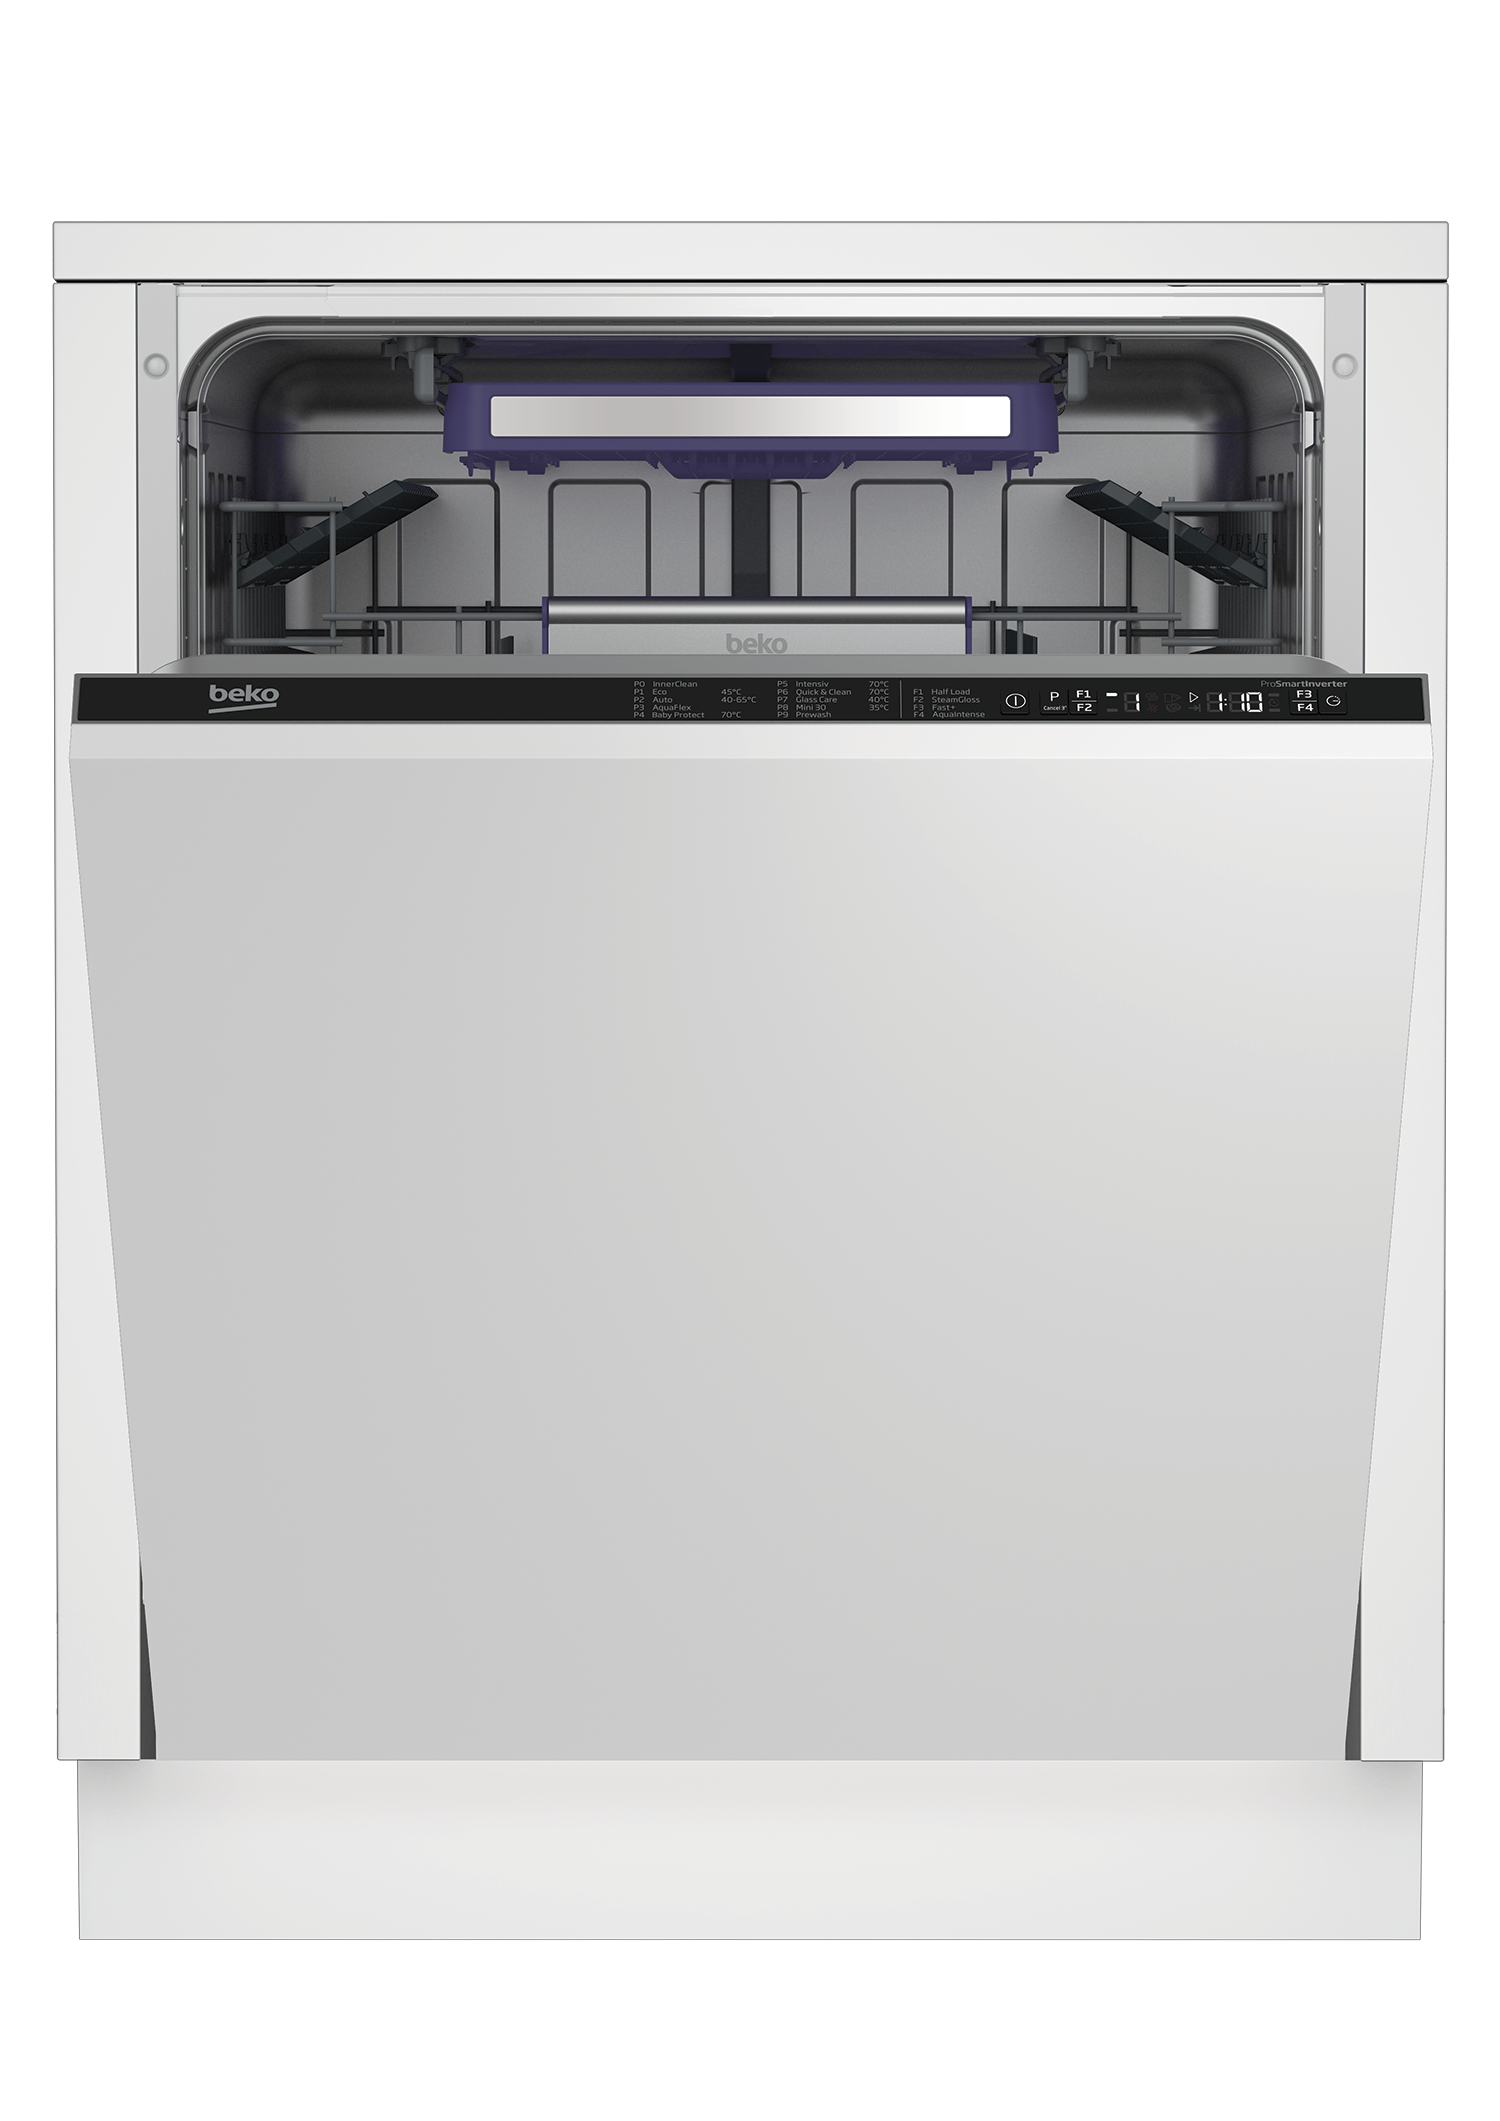 Integrated Dishwasher (14 place settings, Full-size) DIN38450